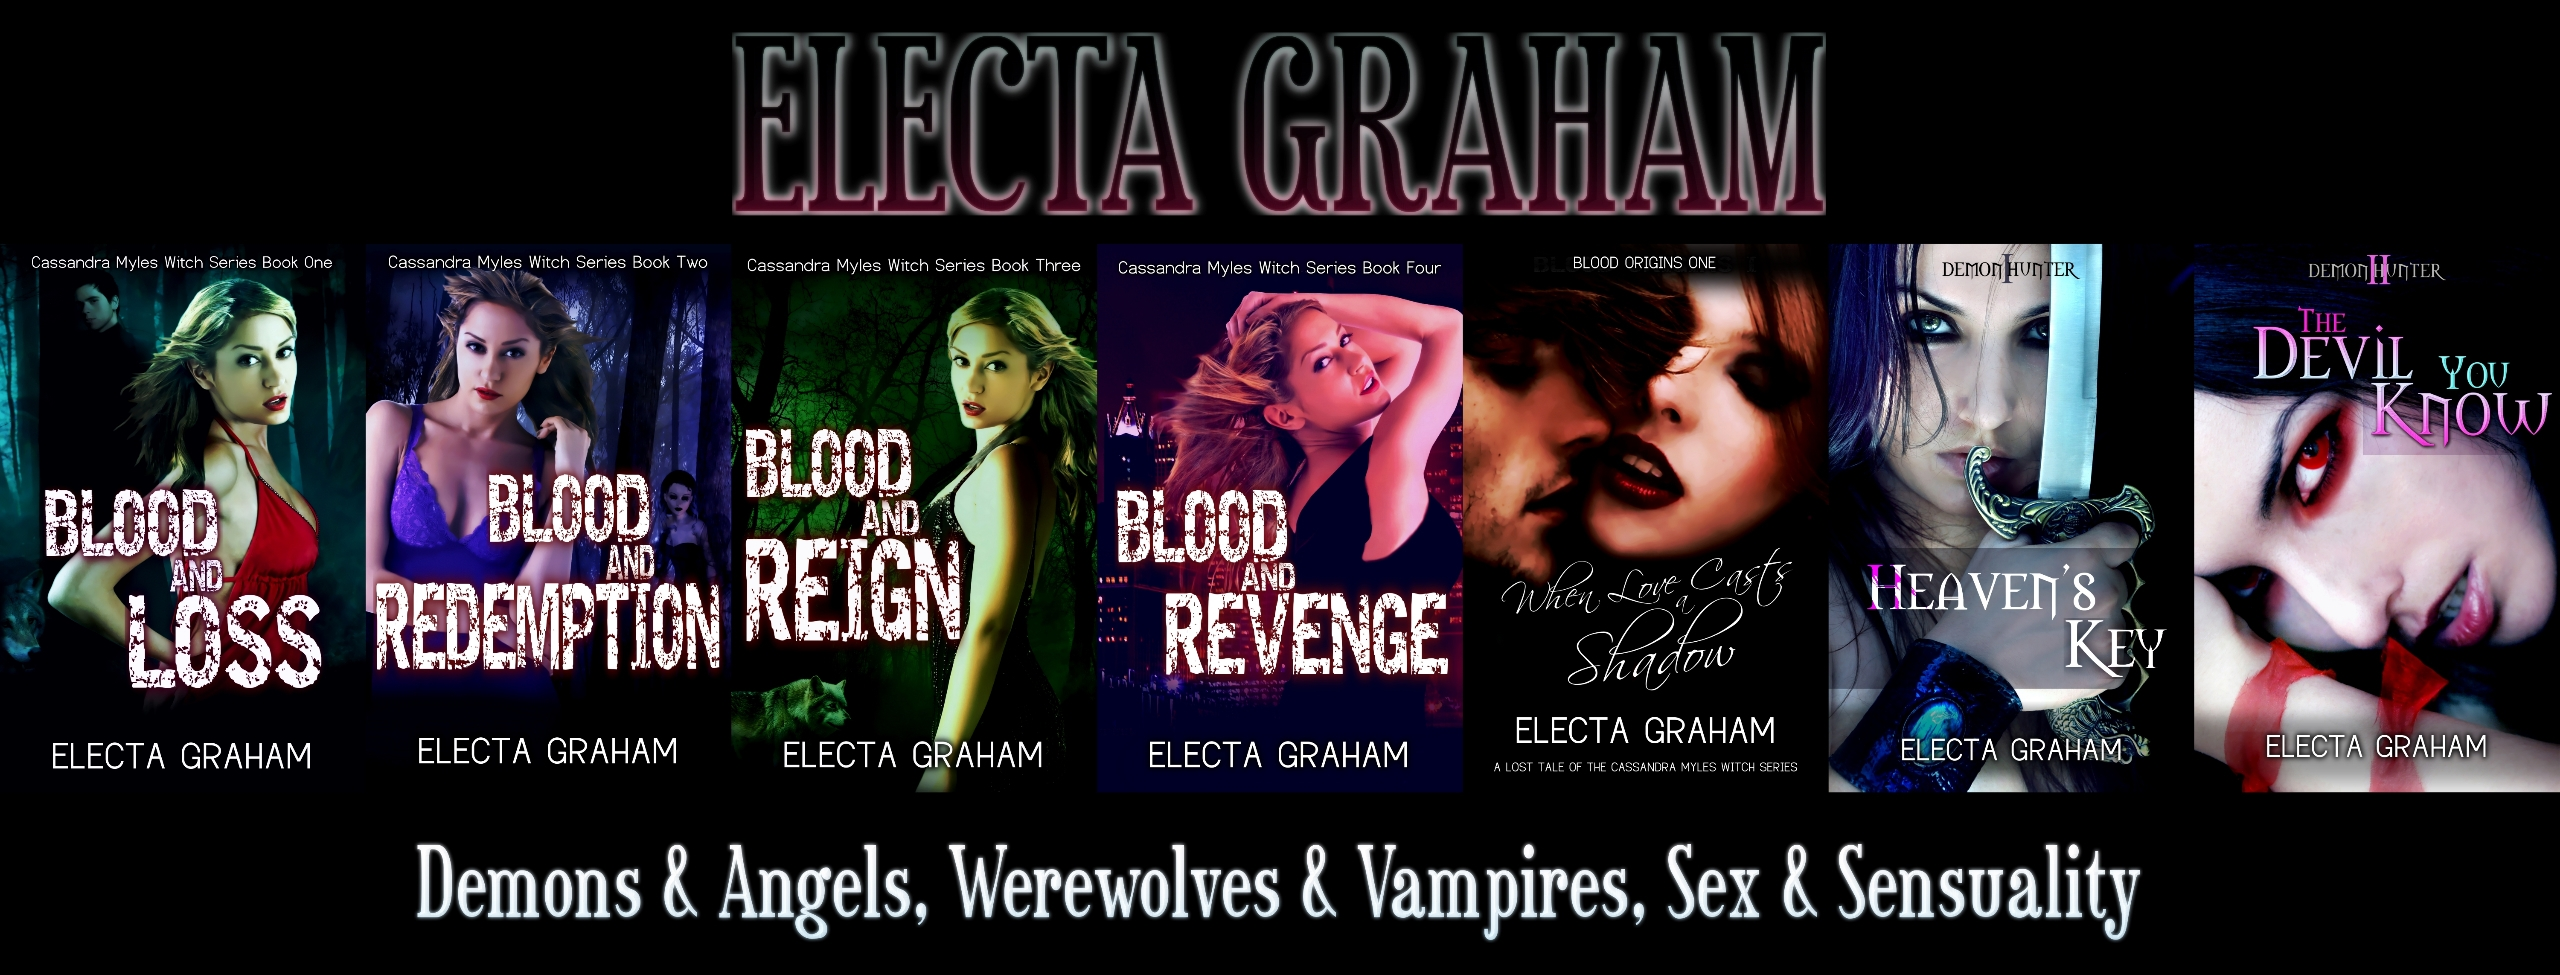 Electa Graham (@electagraham) Cover Image